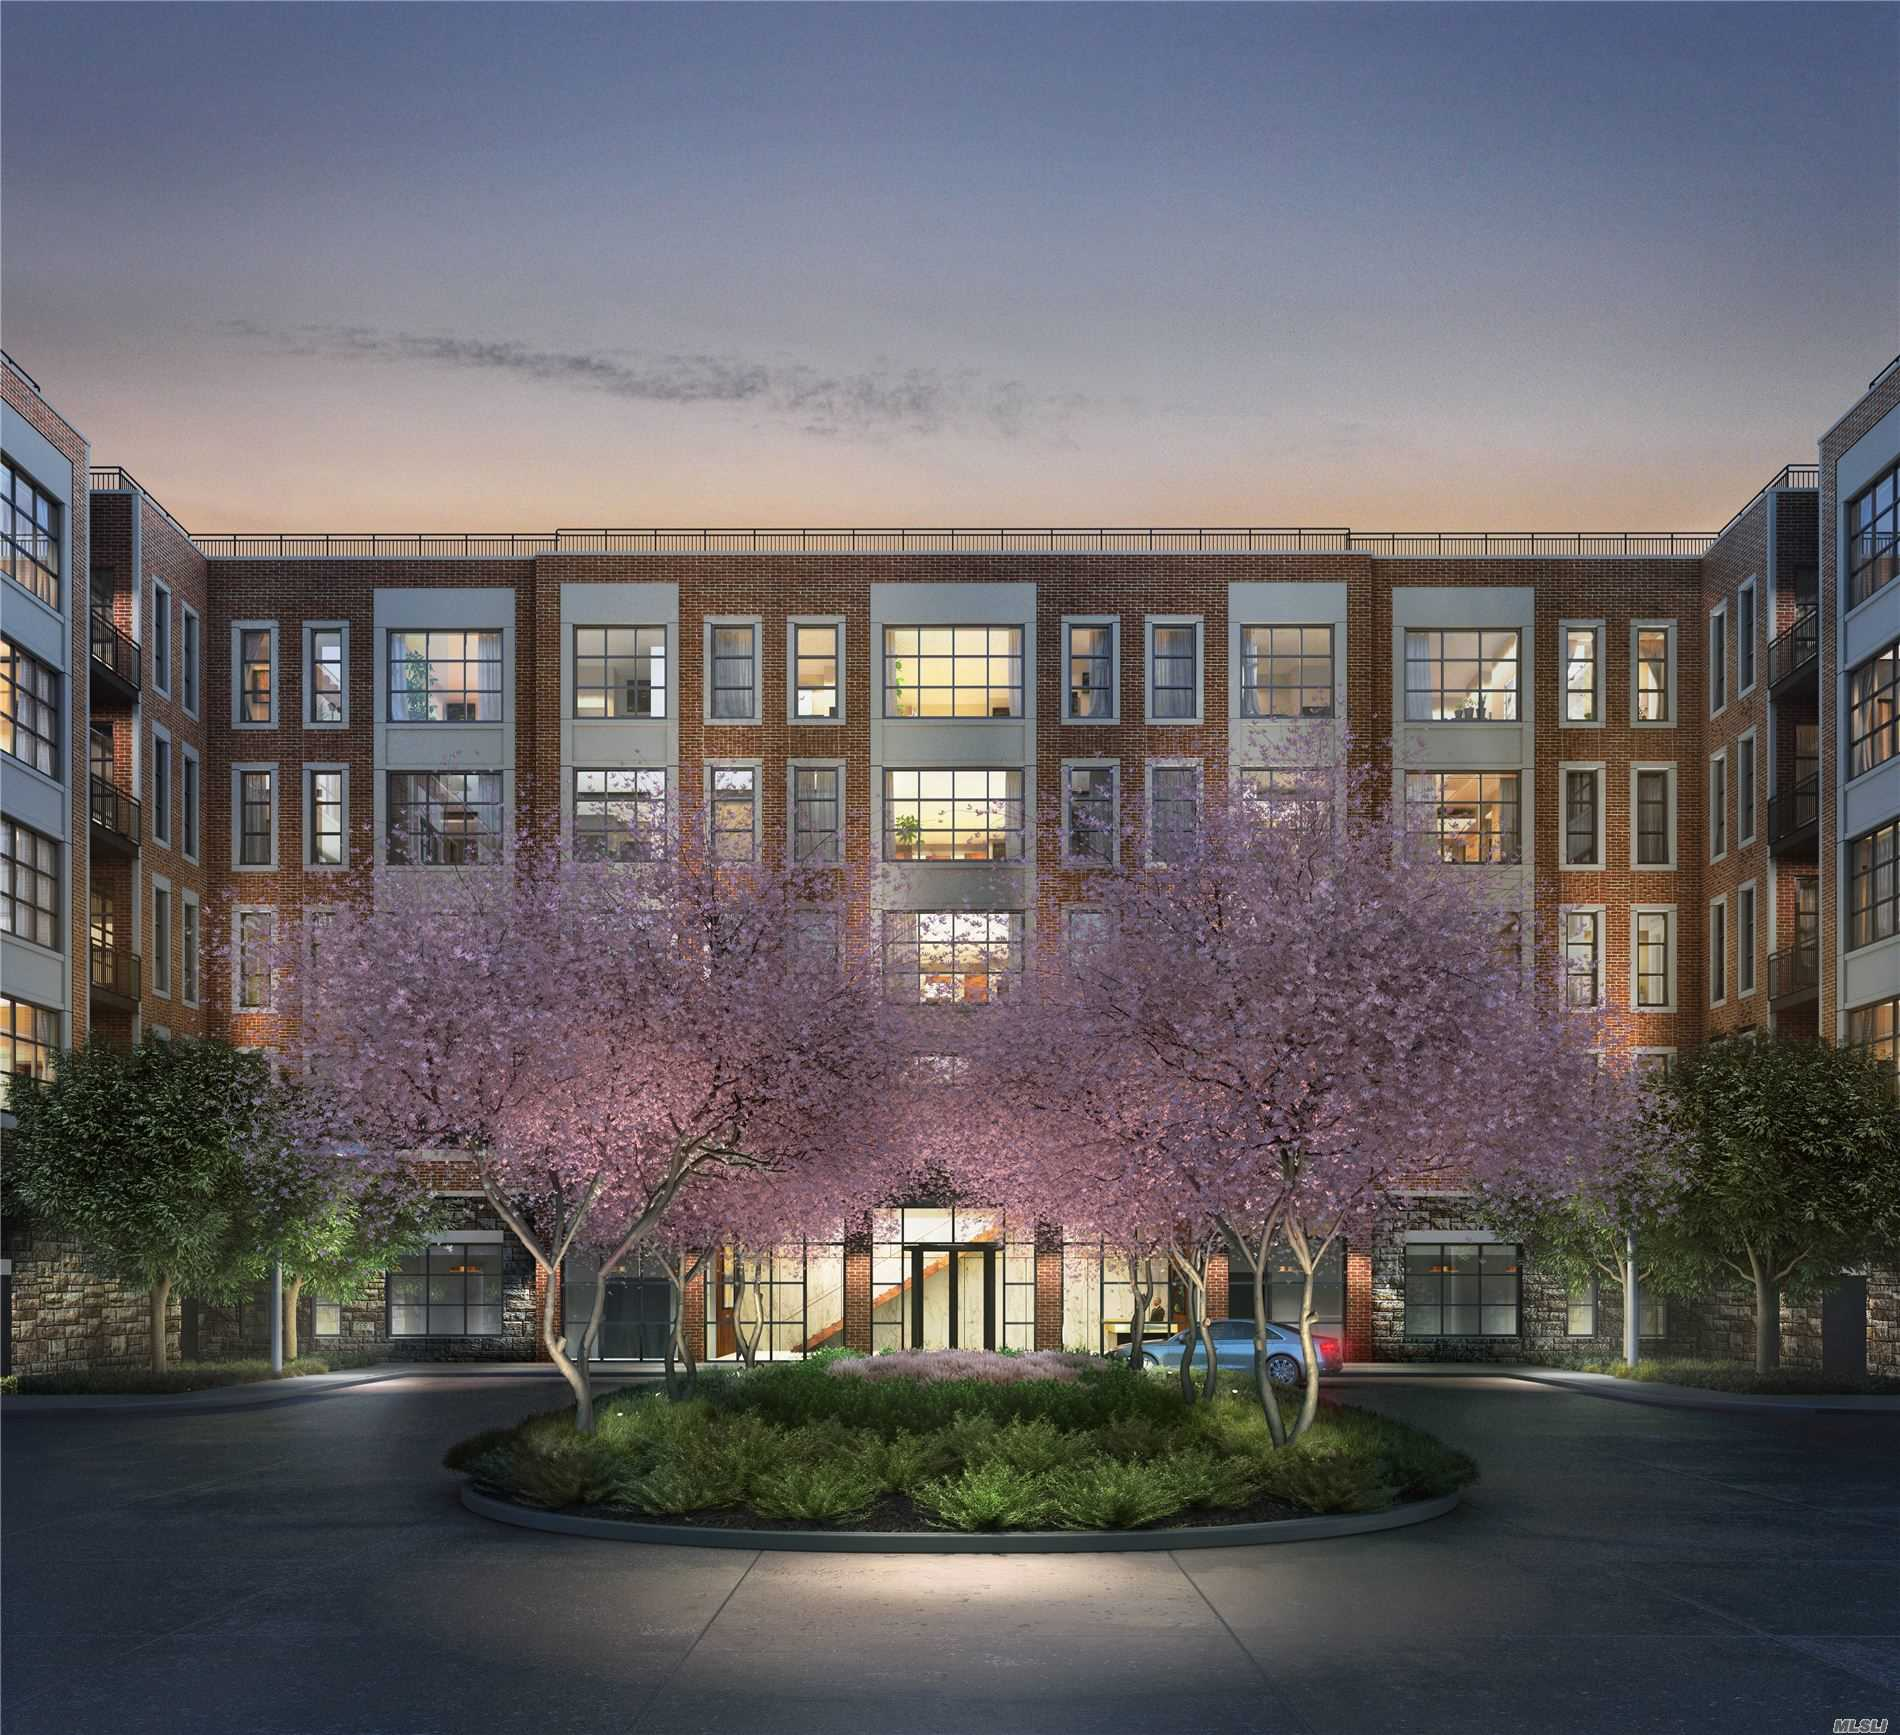 Property for sale at 100 Garvies Point Road # 1225, Glen Cove NY 11542, Glen Cove,  New York 11542